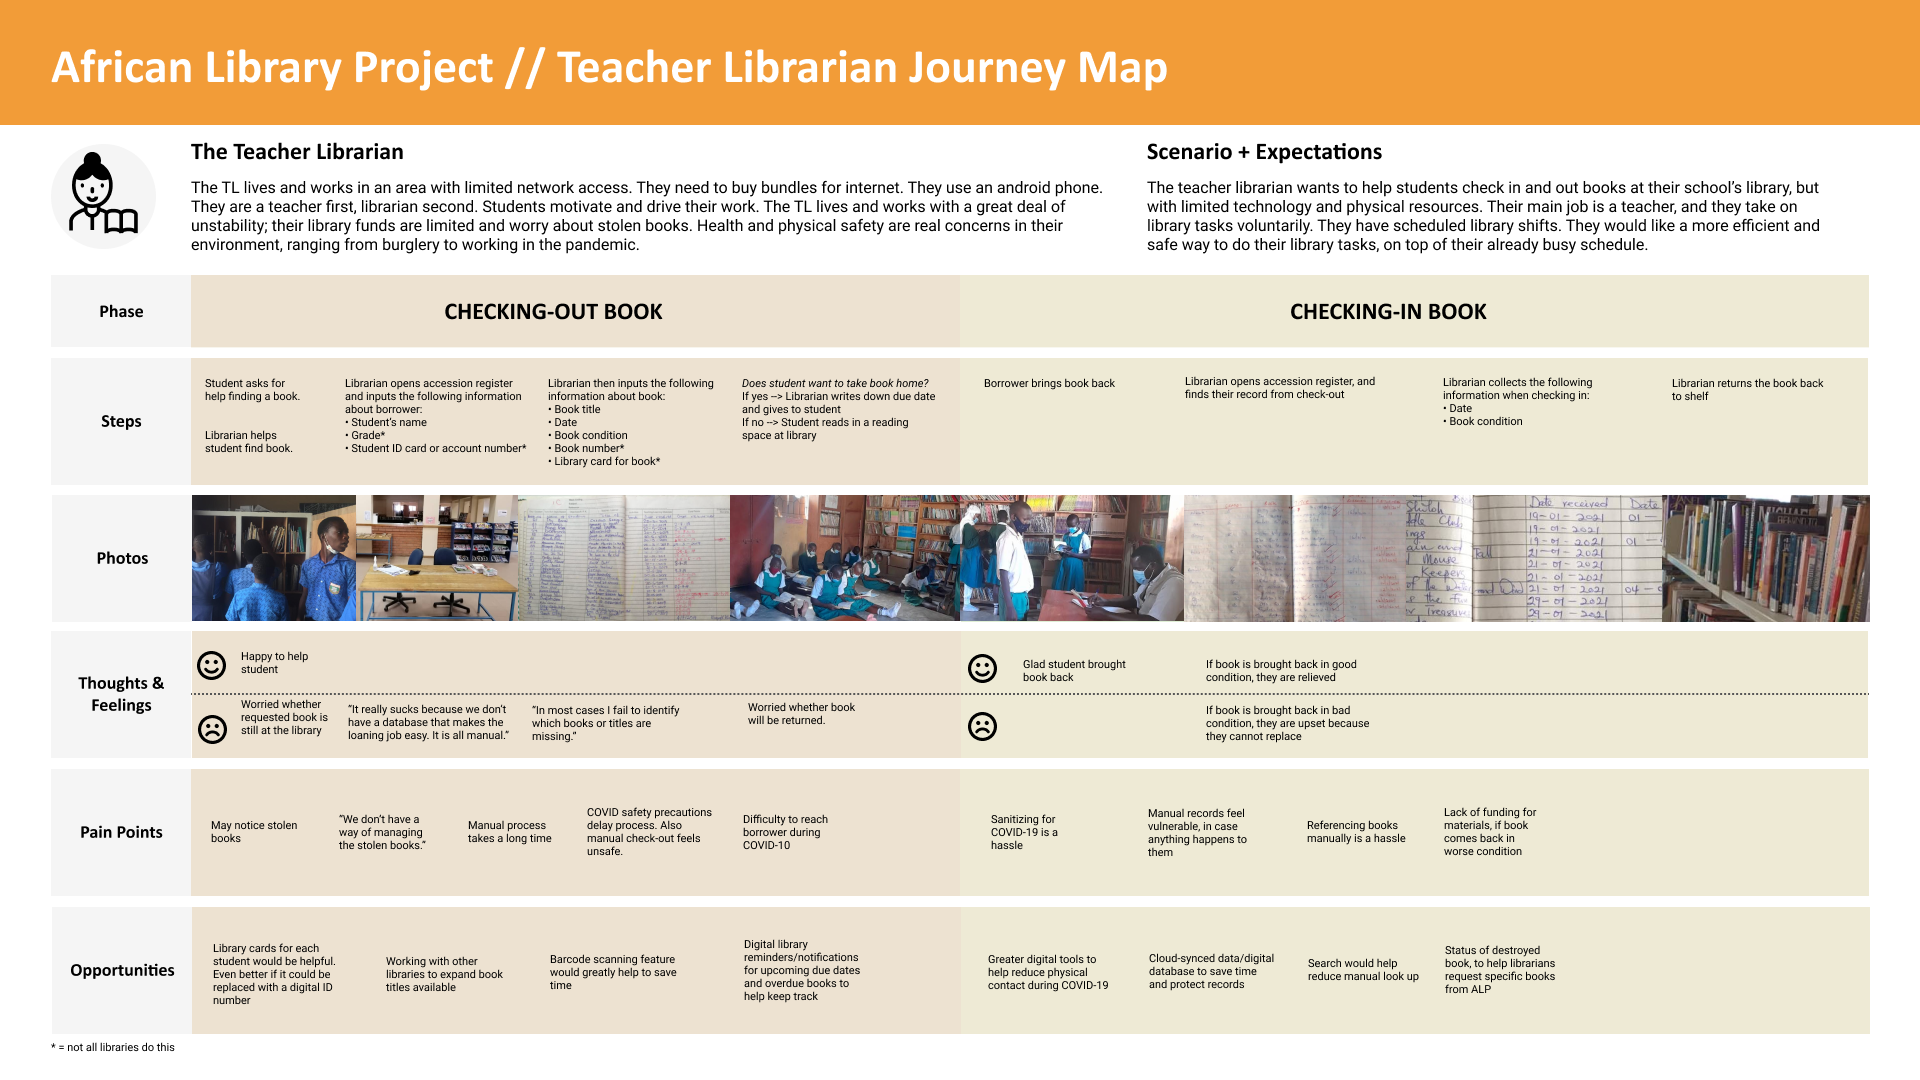 The final output of the teacher librarian user journey map.